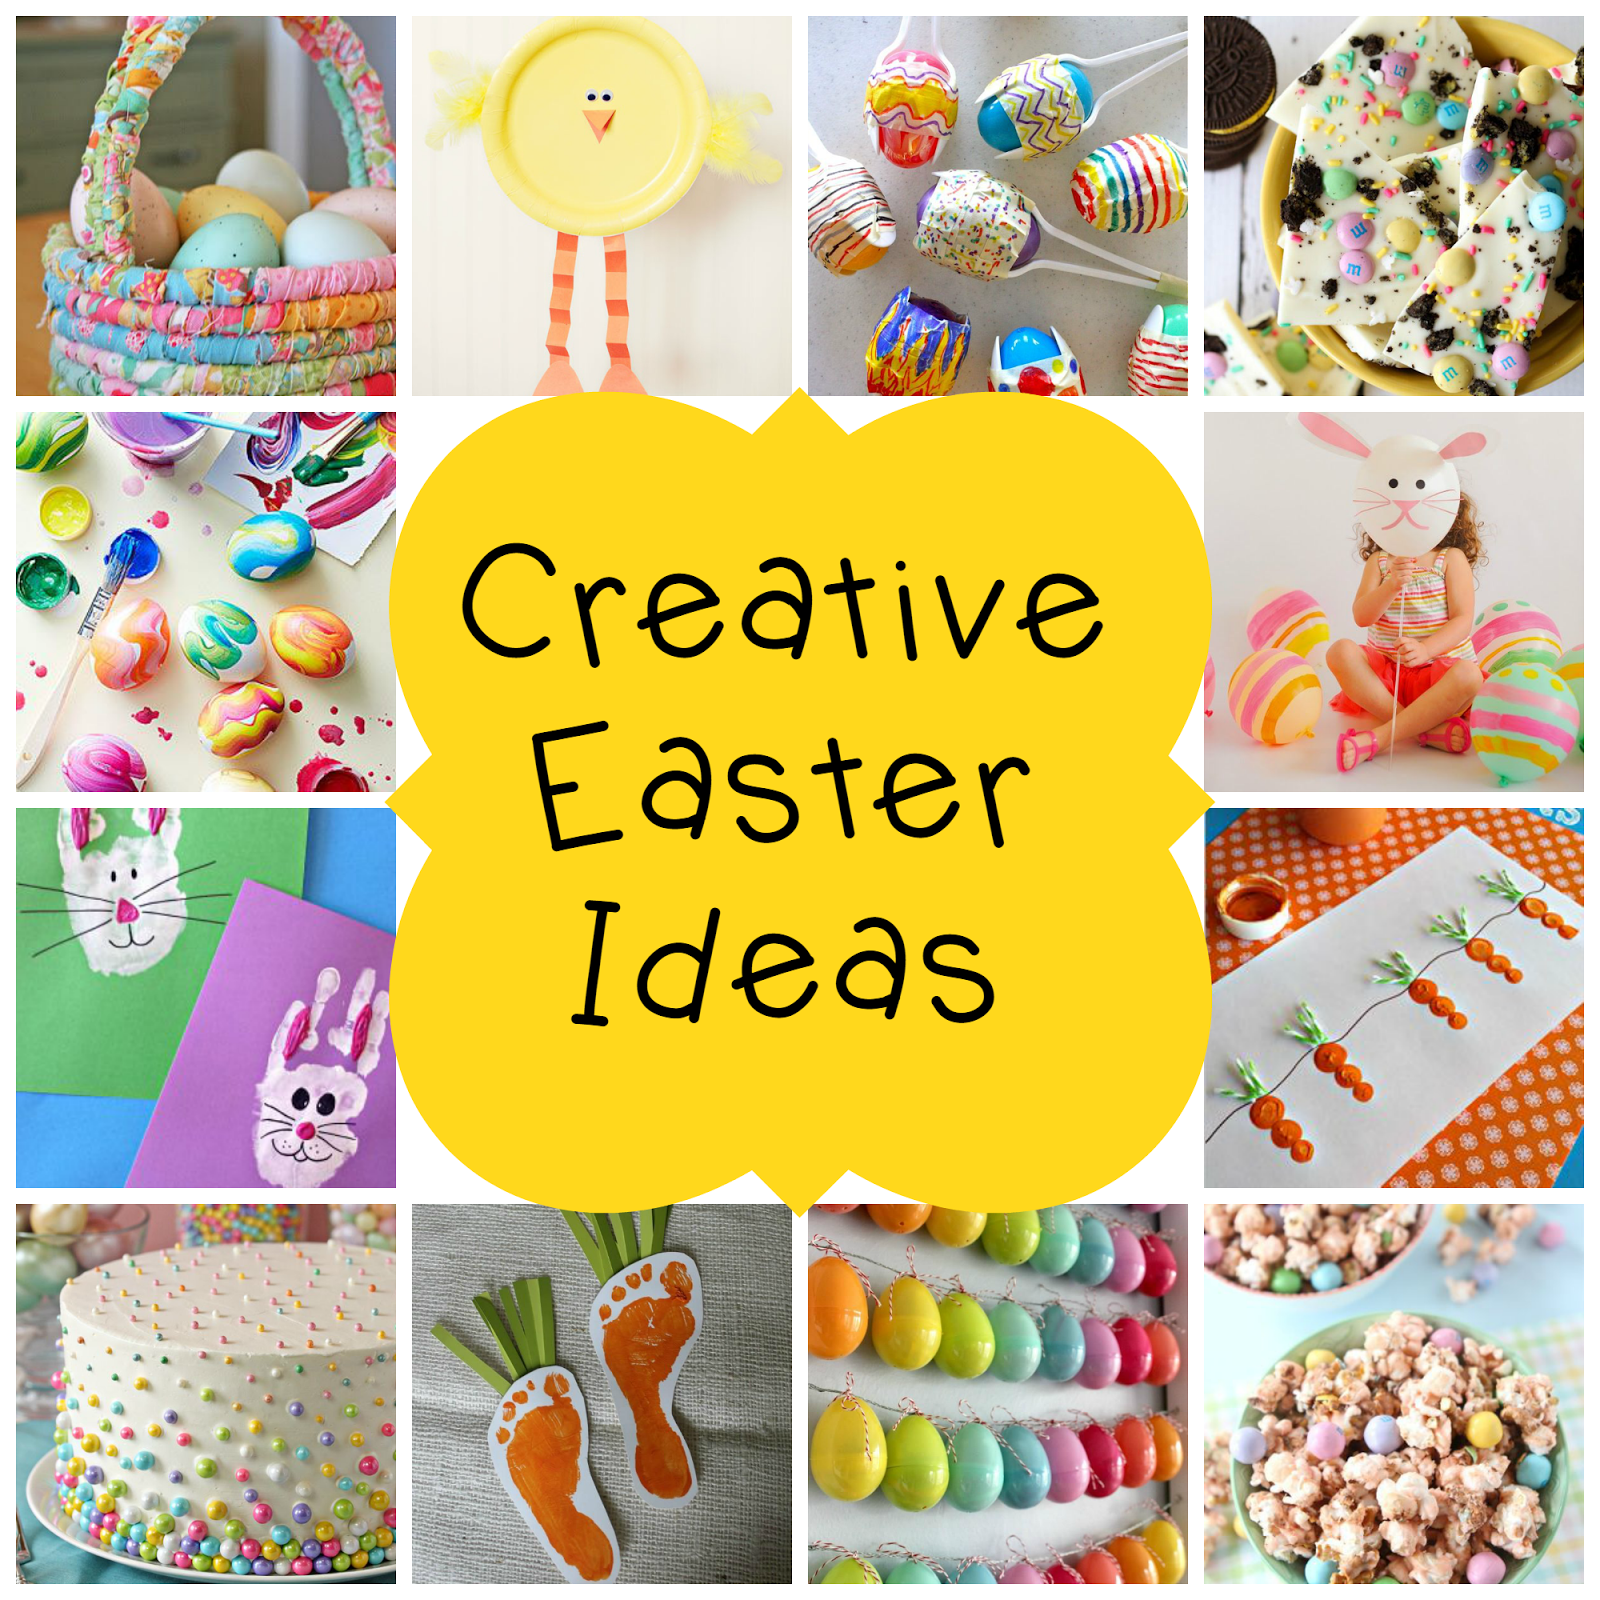 12 creative easter ideas kid crafts treats egg decorating 12 creative easter ideas kid crafts treats egg decorating inspiration and a diy negle Choice Image